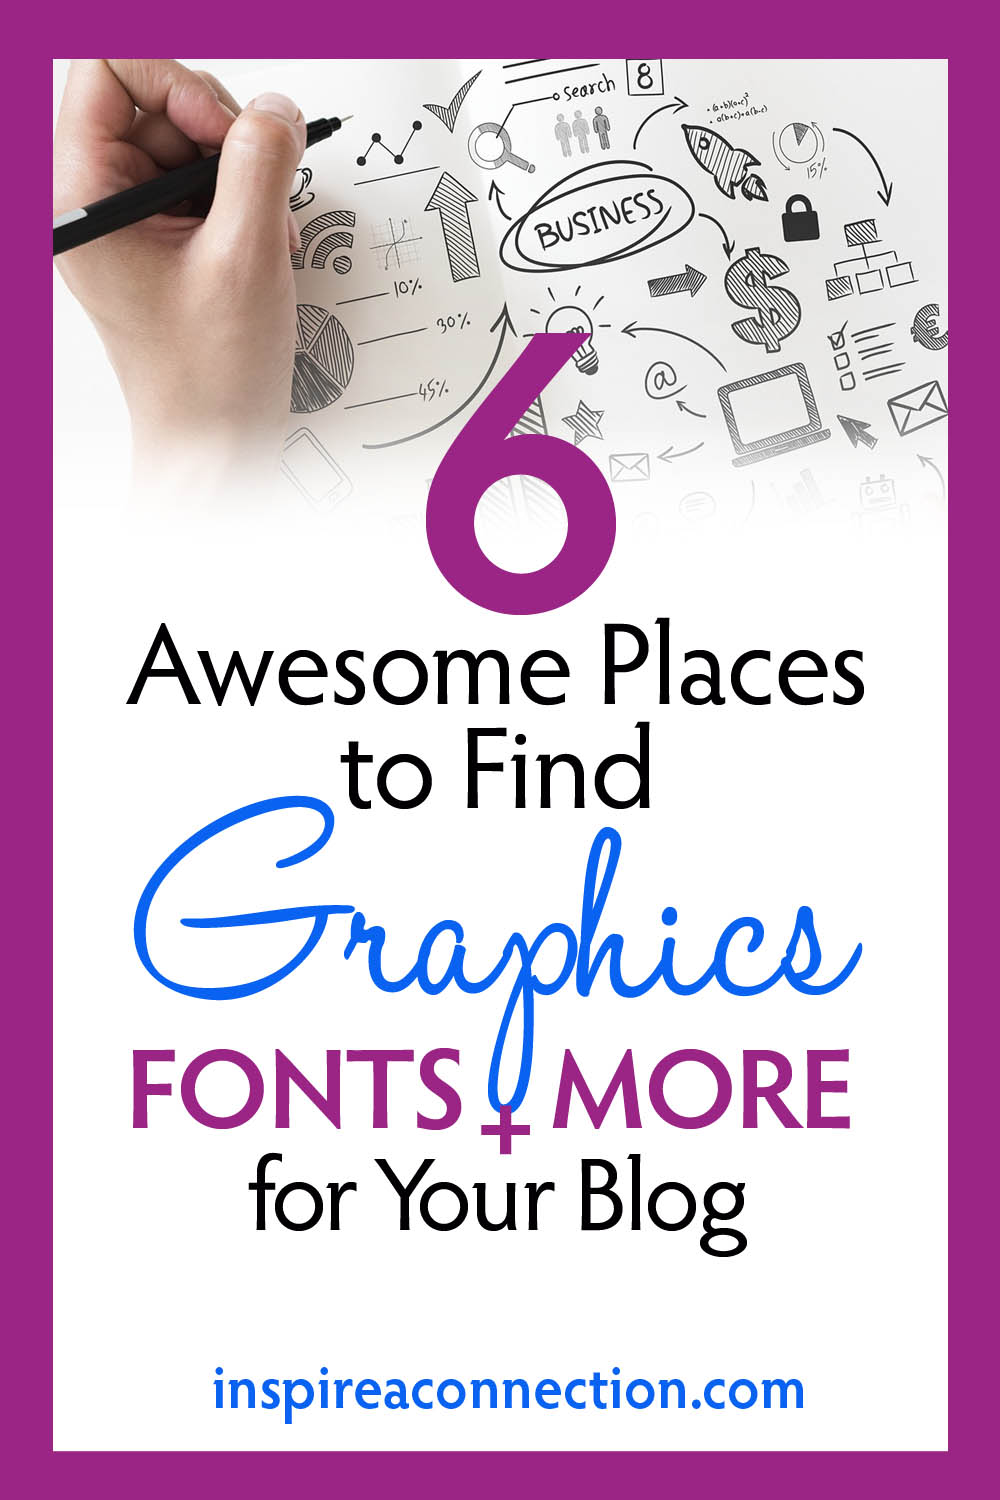 6 Awesome Places to Find Graphics, Fonts and More for your Blog.jpg